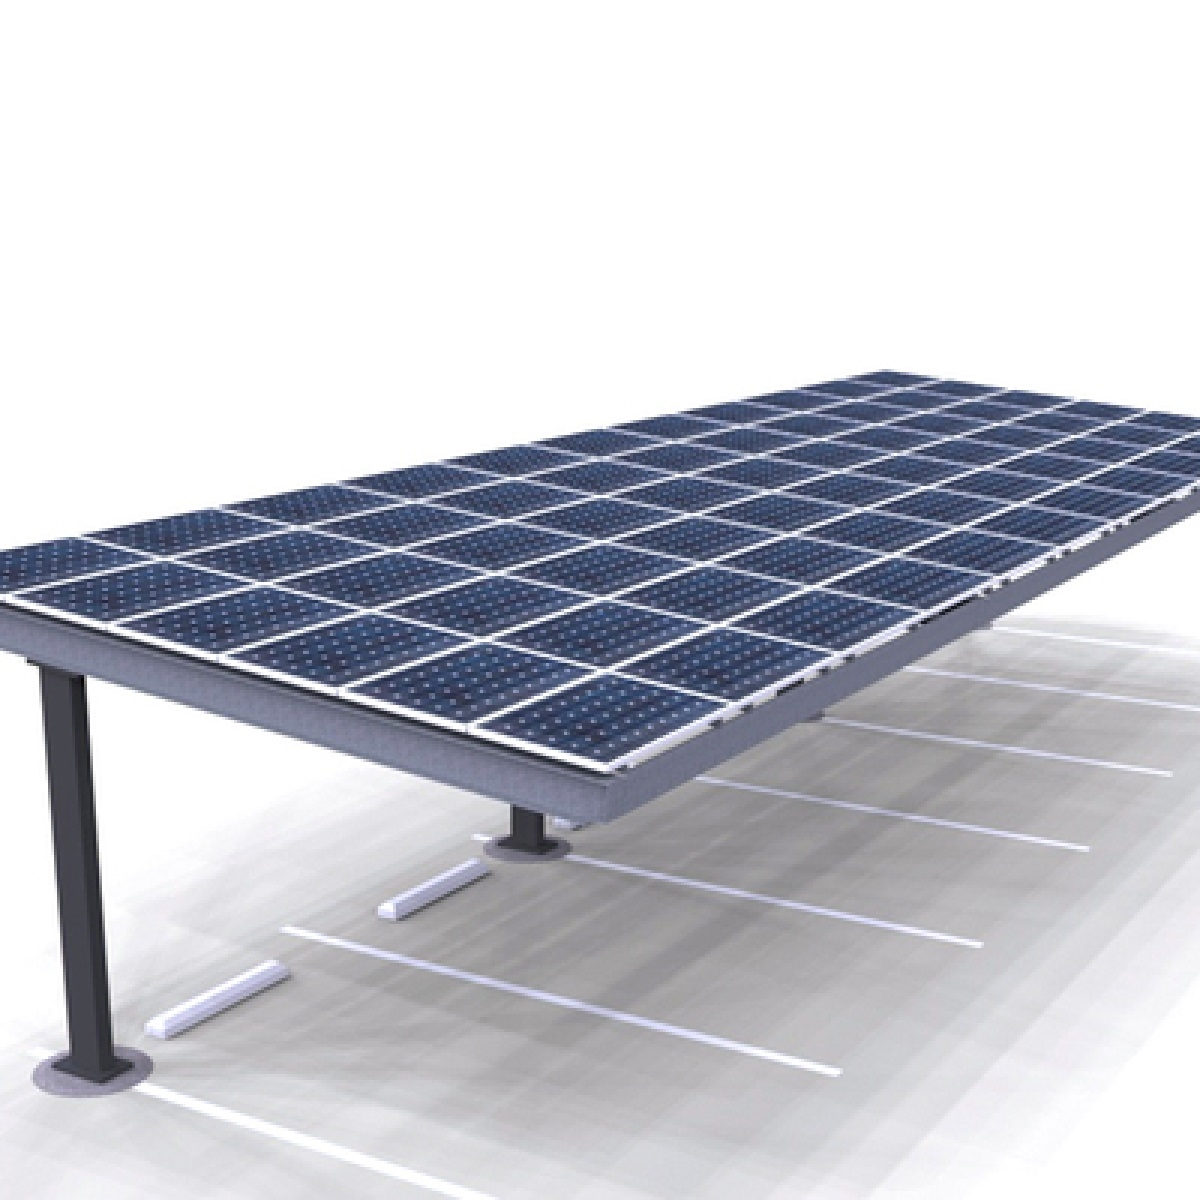 Carport Structures Solar Carport Single Column Single